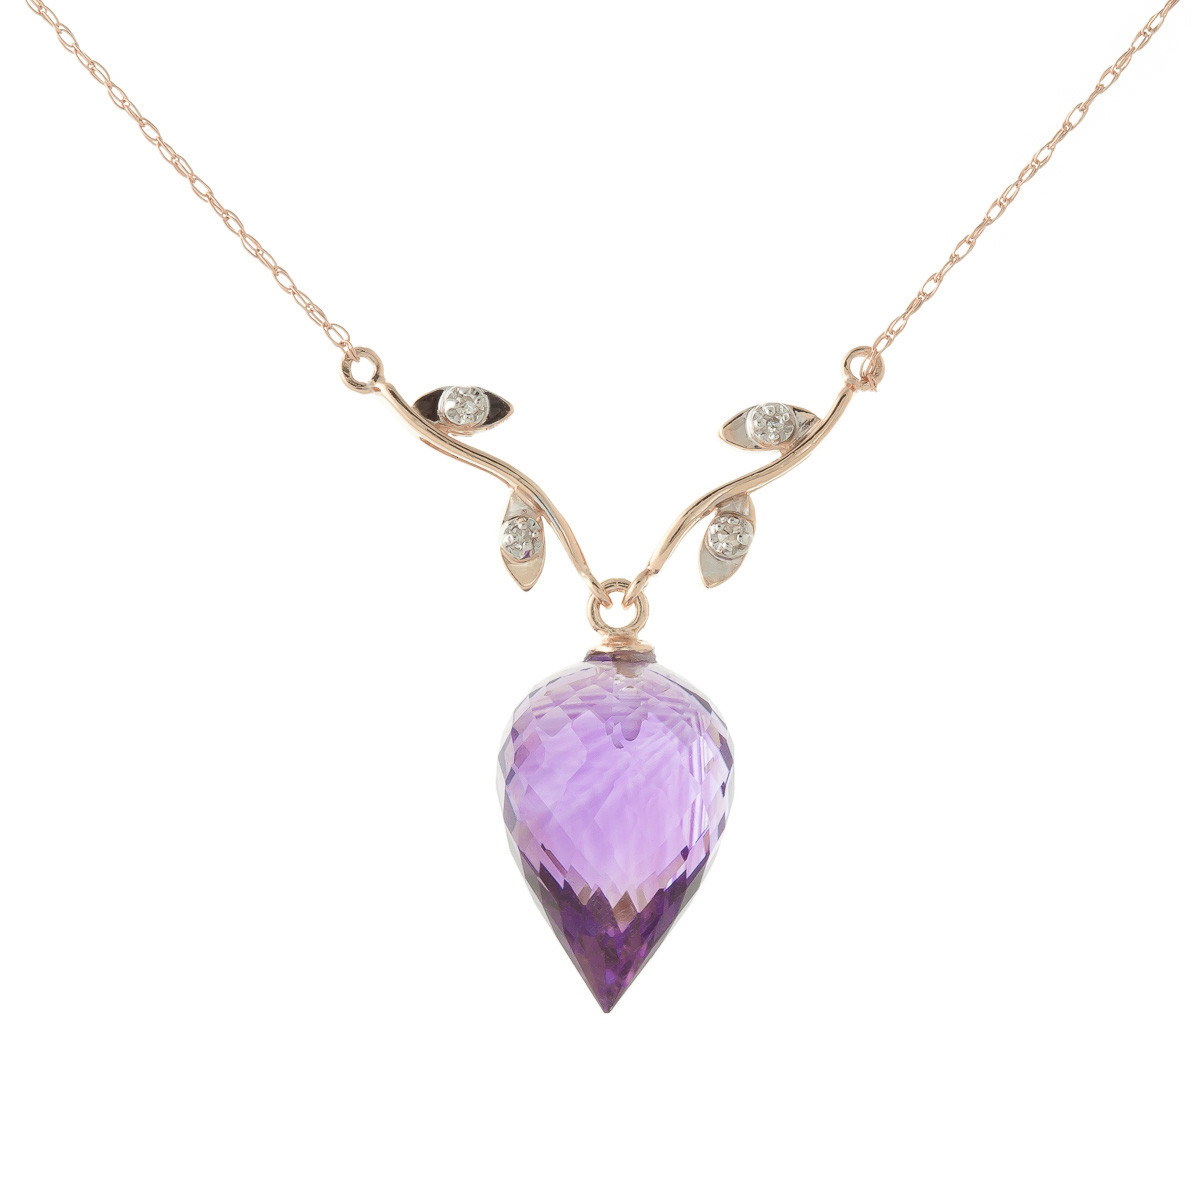 Pointed Briolette Cut Amethyst Pendant Necklace 9.52 ctw in 9ct Rose Gold